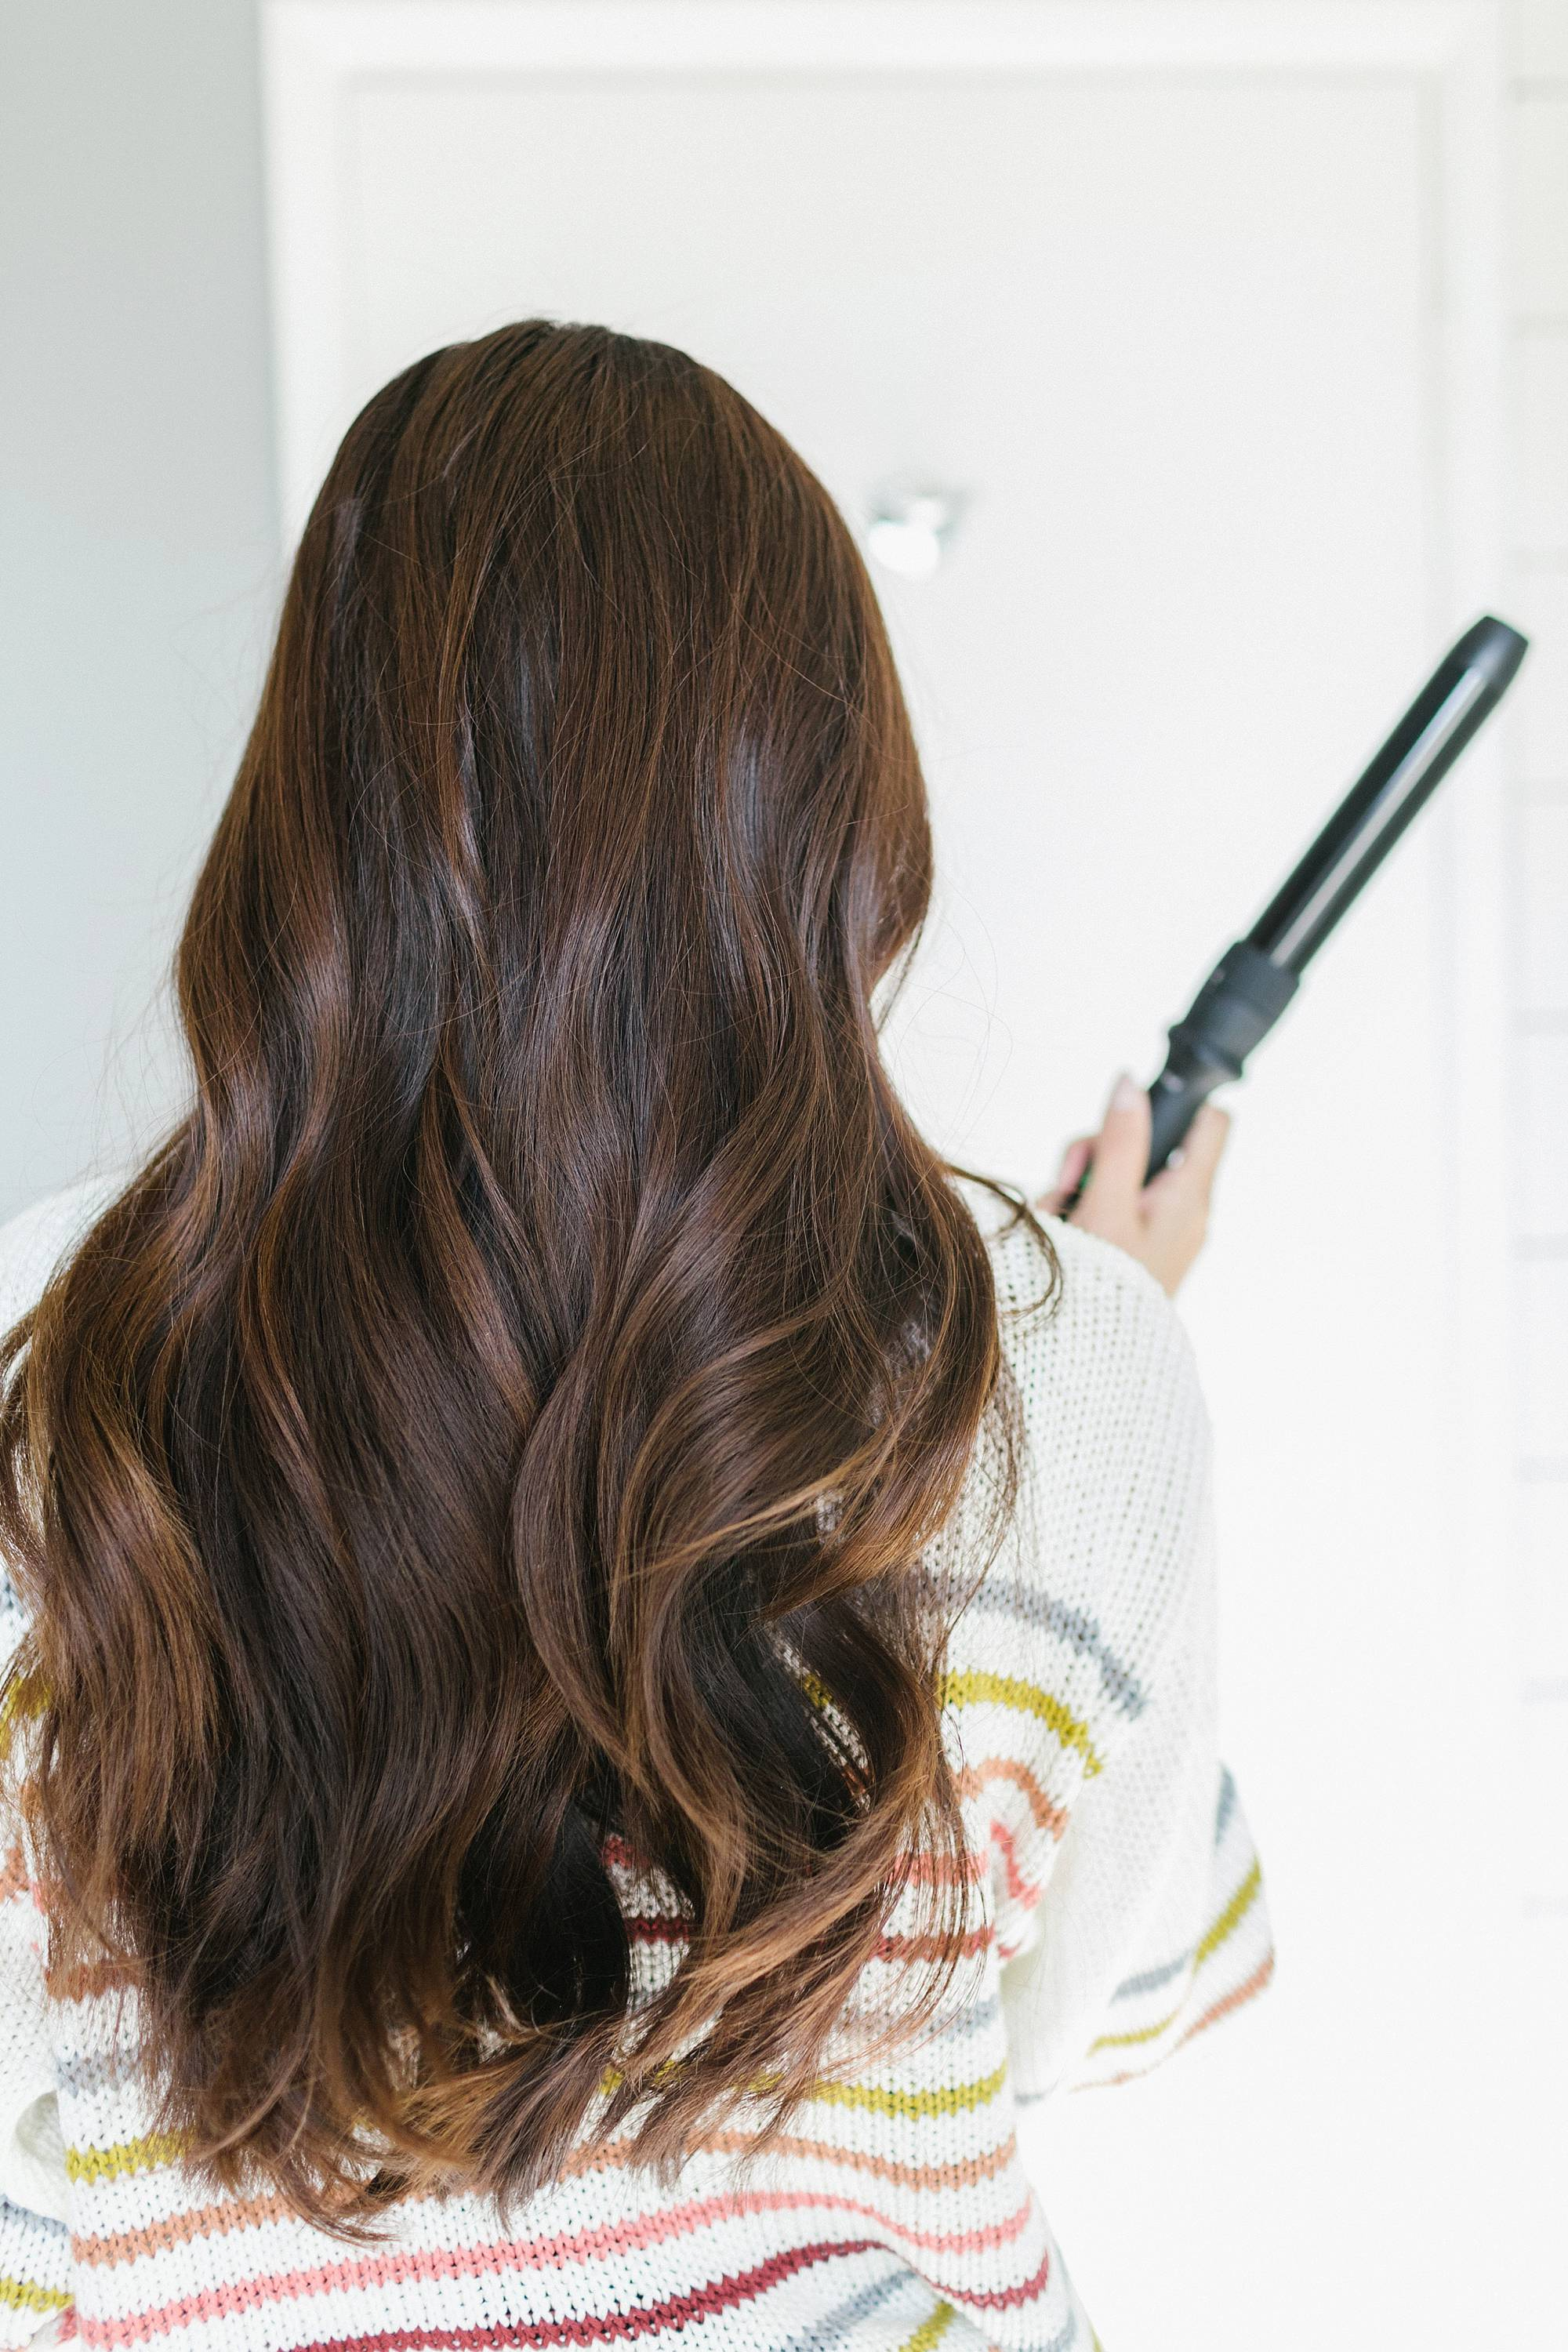 Review of the NuMe octwand 8 different looks for hair interchangeable barrels